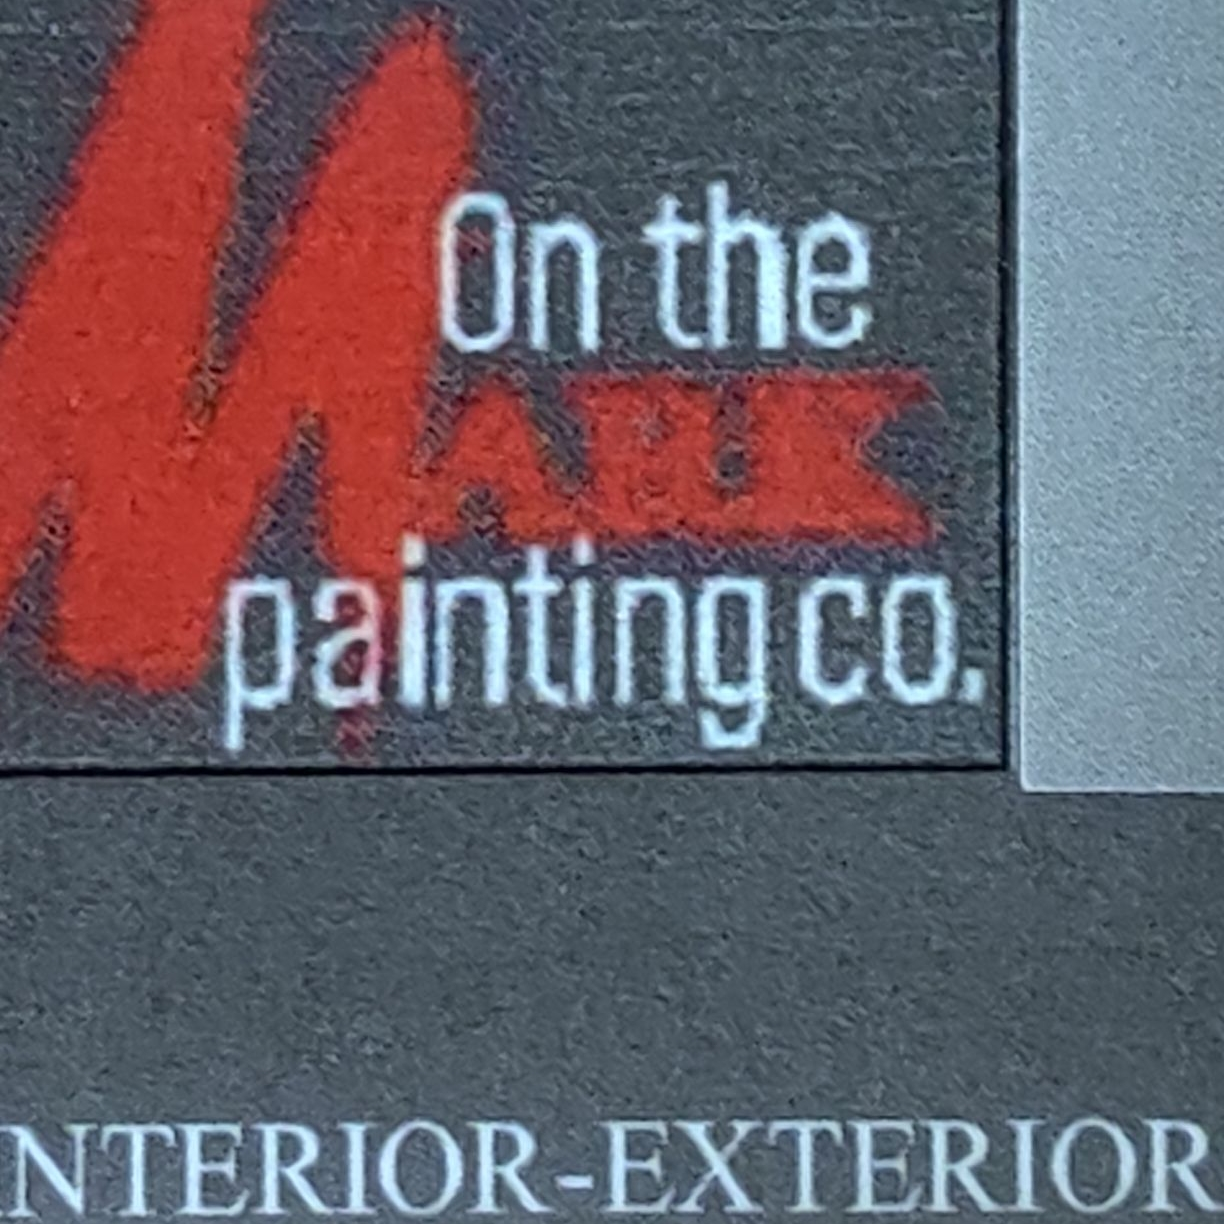 On The Mark Painting Co.